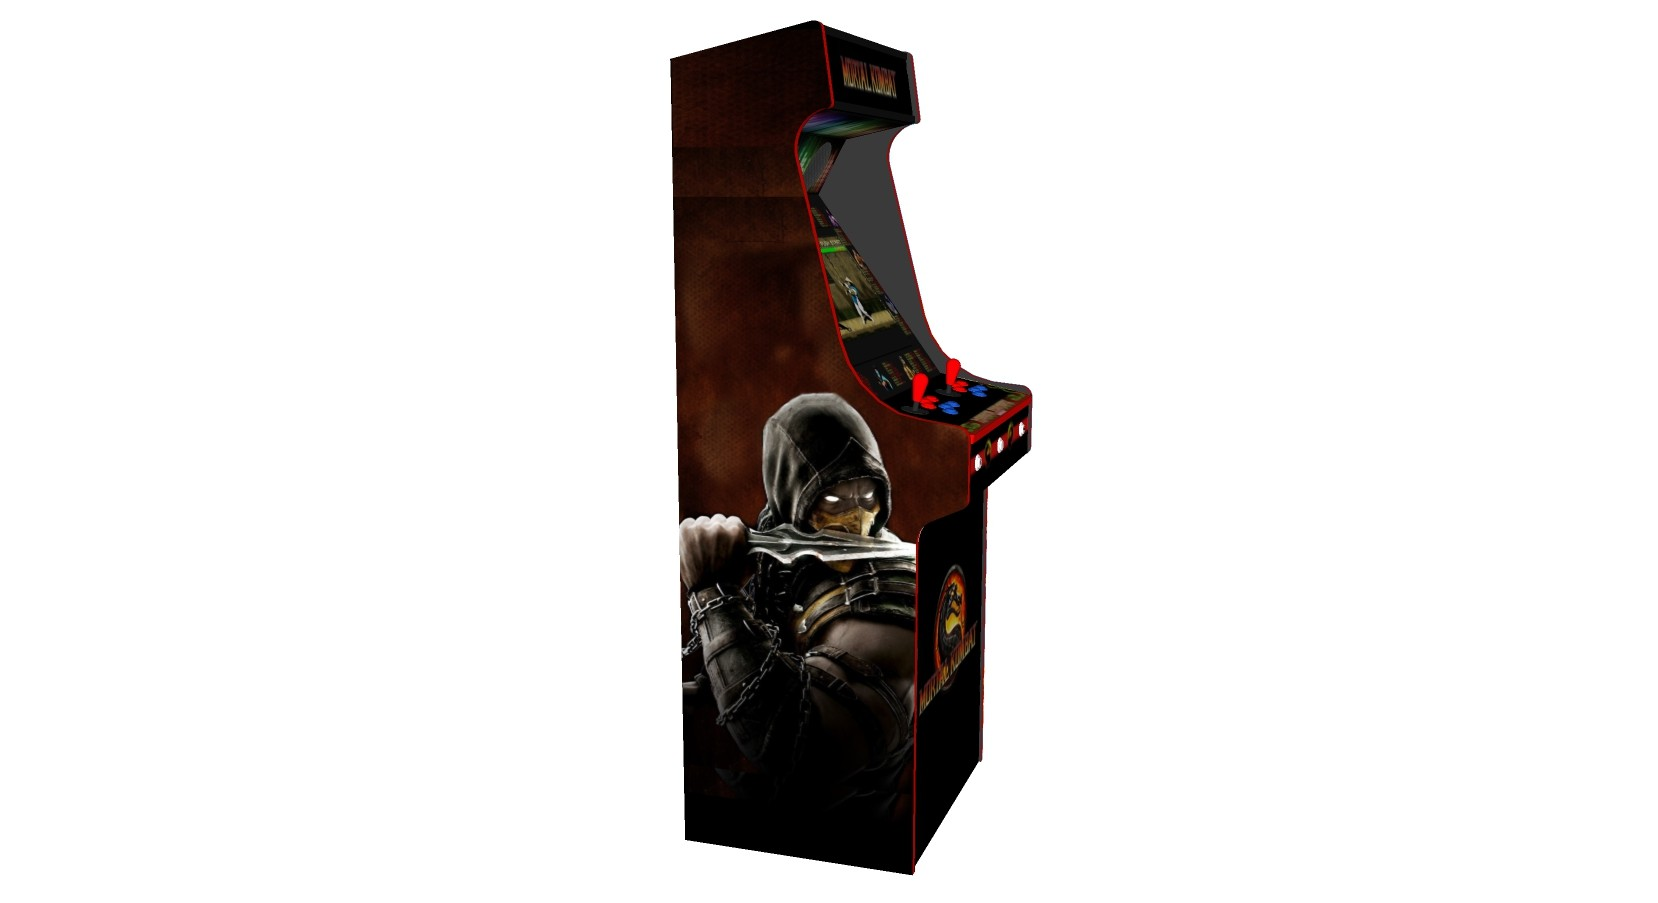 Mortal Kombat Artwork, Upright Arcade Machine, 815 games, Subwoofer, RGB  LEDs